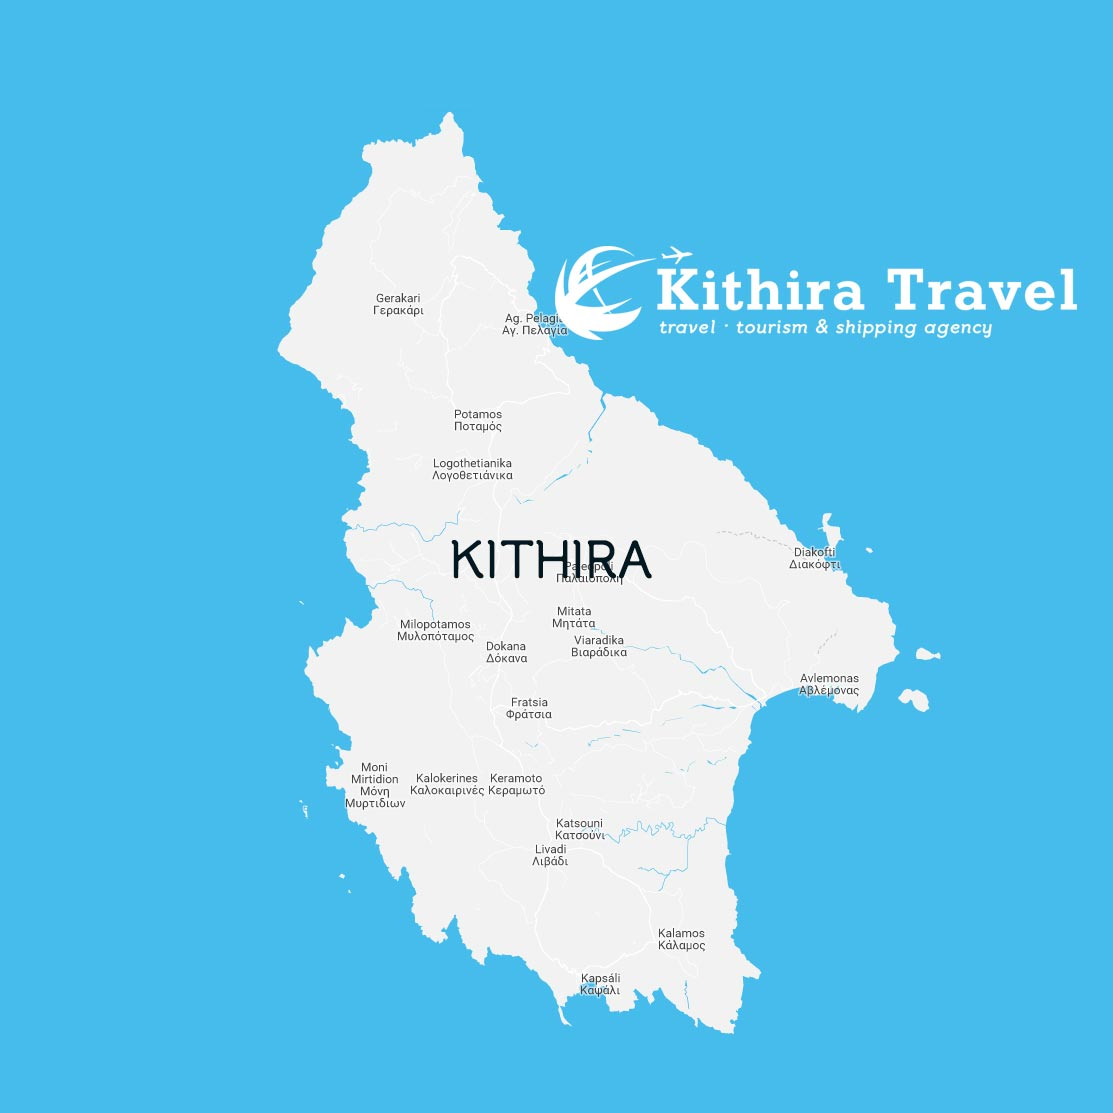 Ferry to Kythira IONIS Porfyrousa Travel Agency KITHIRA TRAVEL